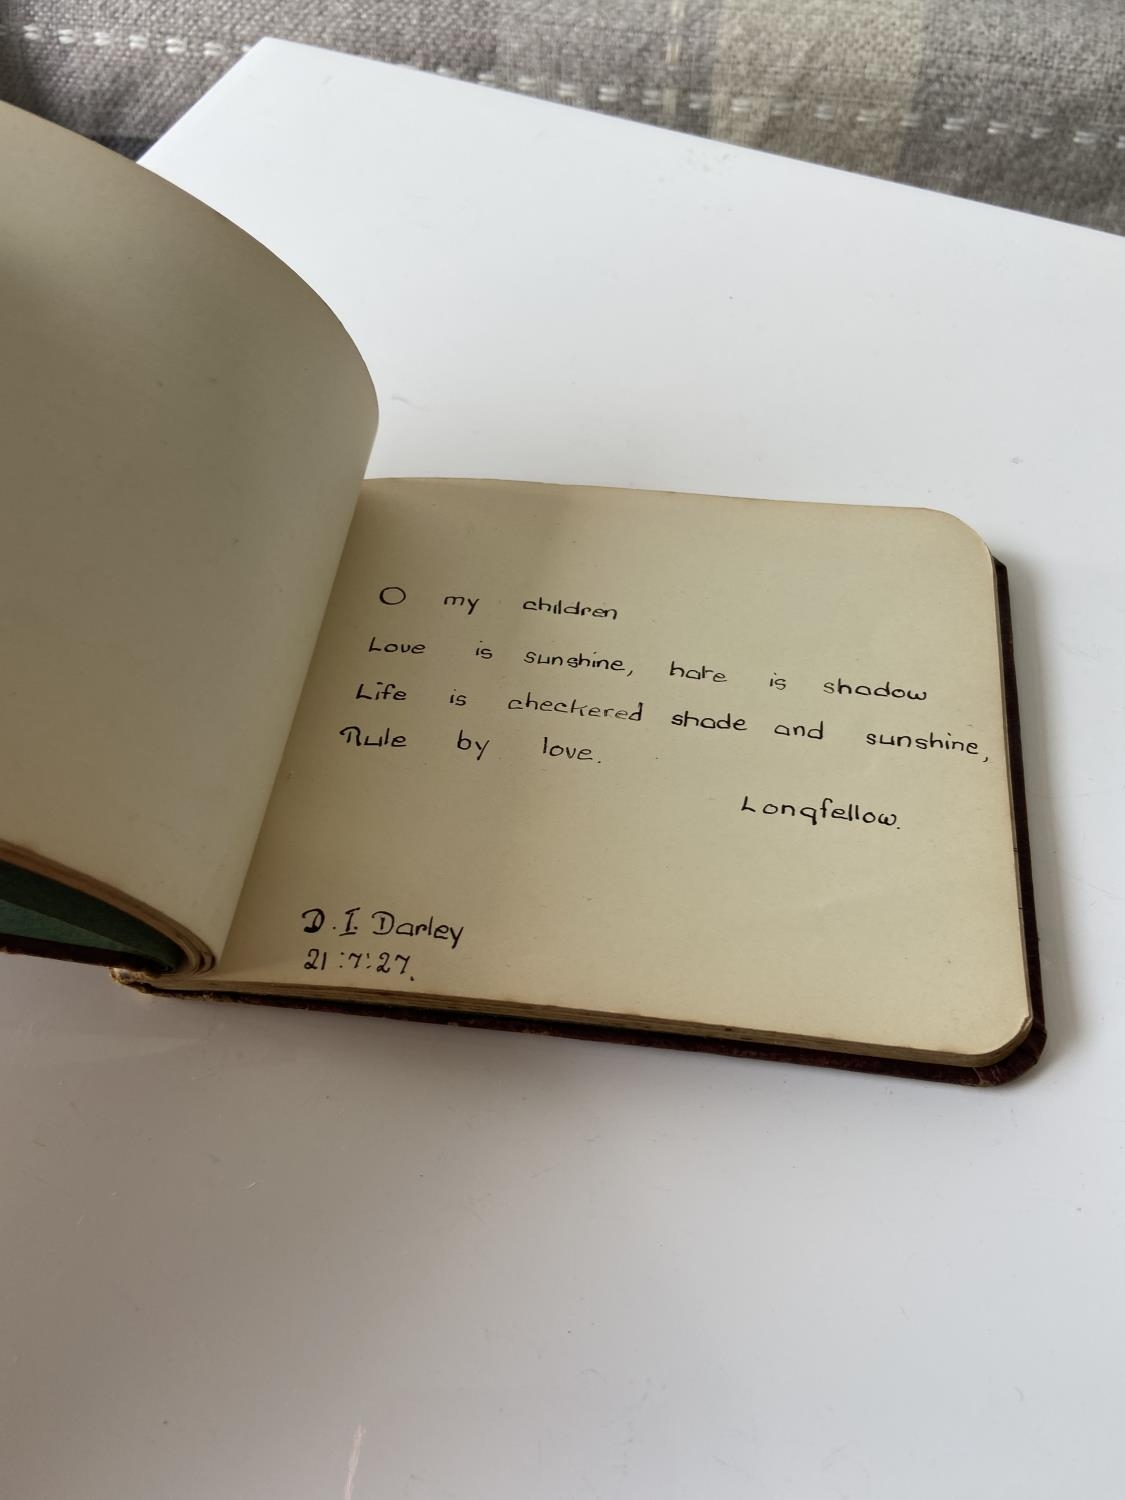 An old autograph album containing various poems, sayings & doodles - Image 7 of 18